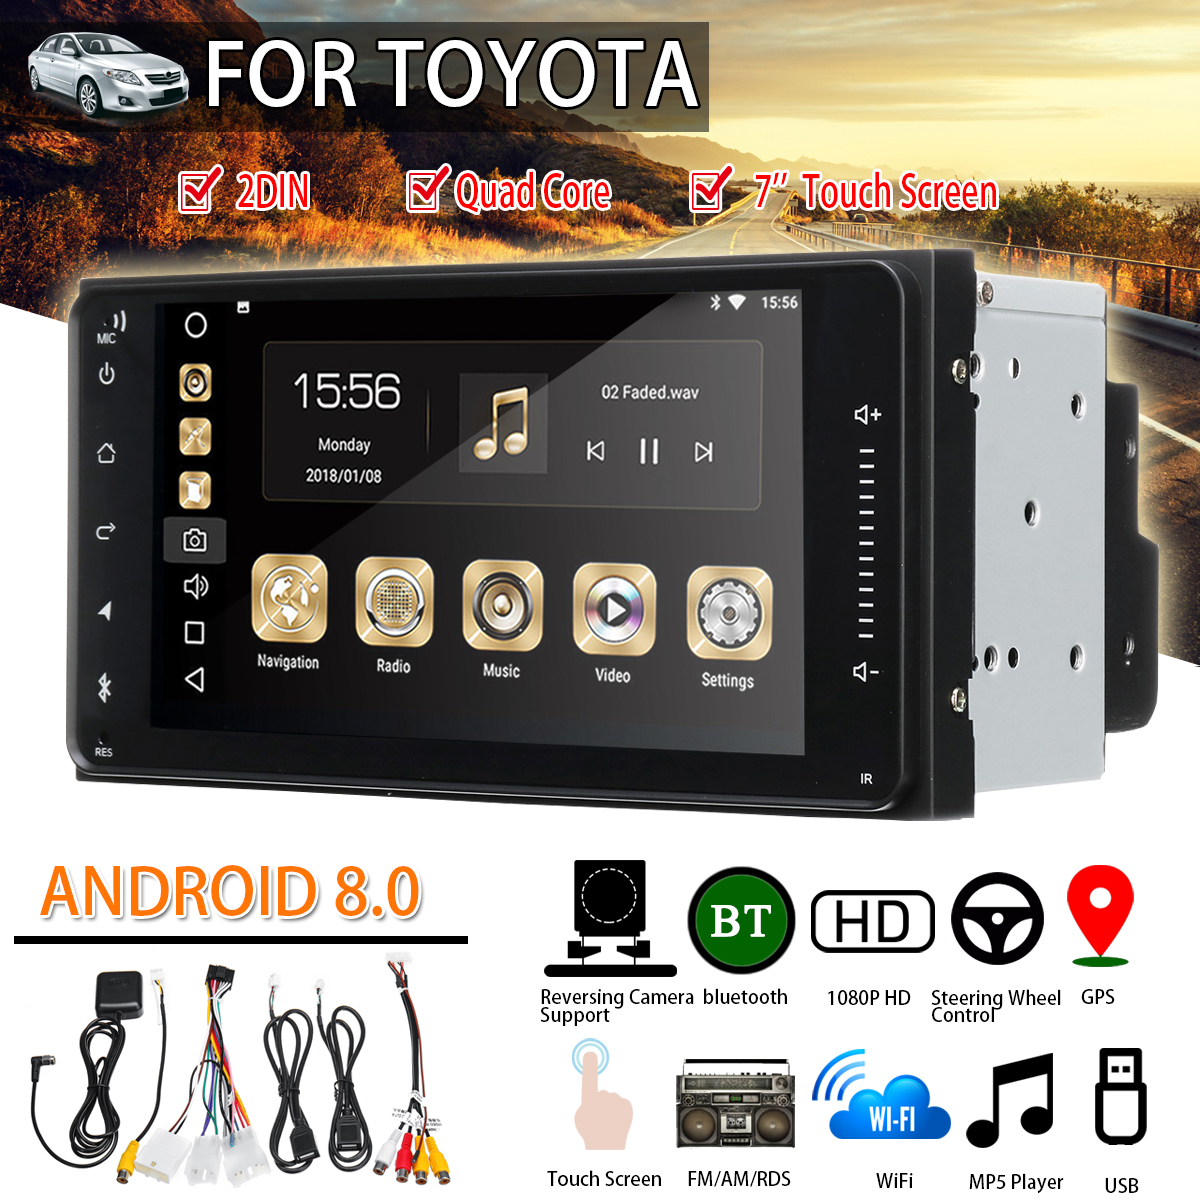 Car Multimedia Player 7 for Android 8 for Toyota Car Stereo 2DIN Blutooth WIFI GPS Nav Quad Core Radio Video MP5 PlayerCar Multimedia Player 7 for Android 8 for Toyota Car Stereo 2DIN Blutooth WIFI GPS Nav Quad Core Radio Video MP5 Player